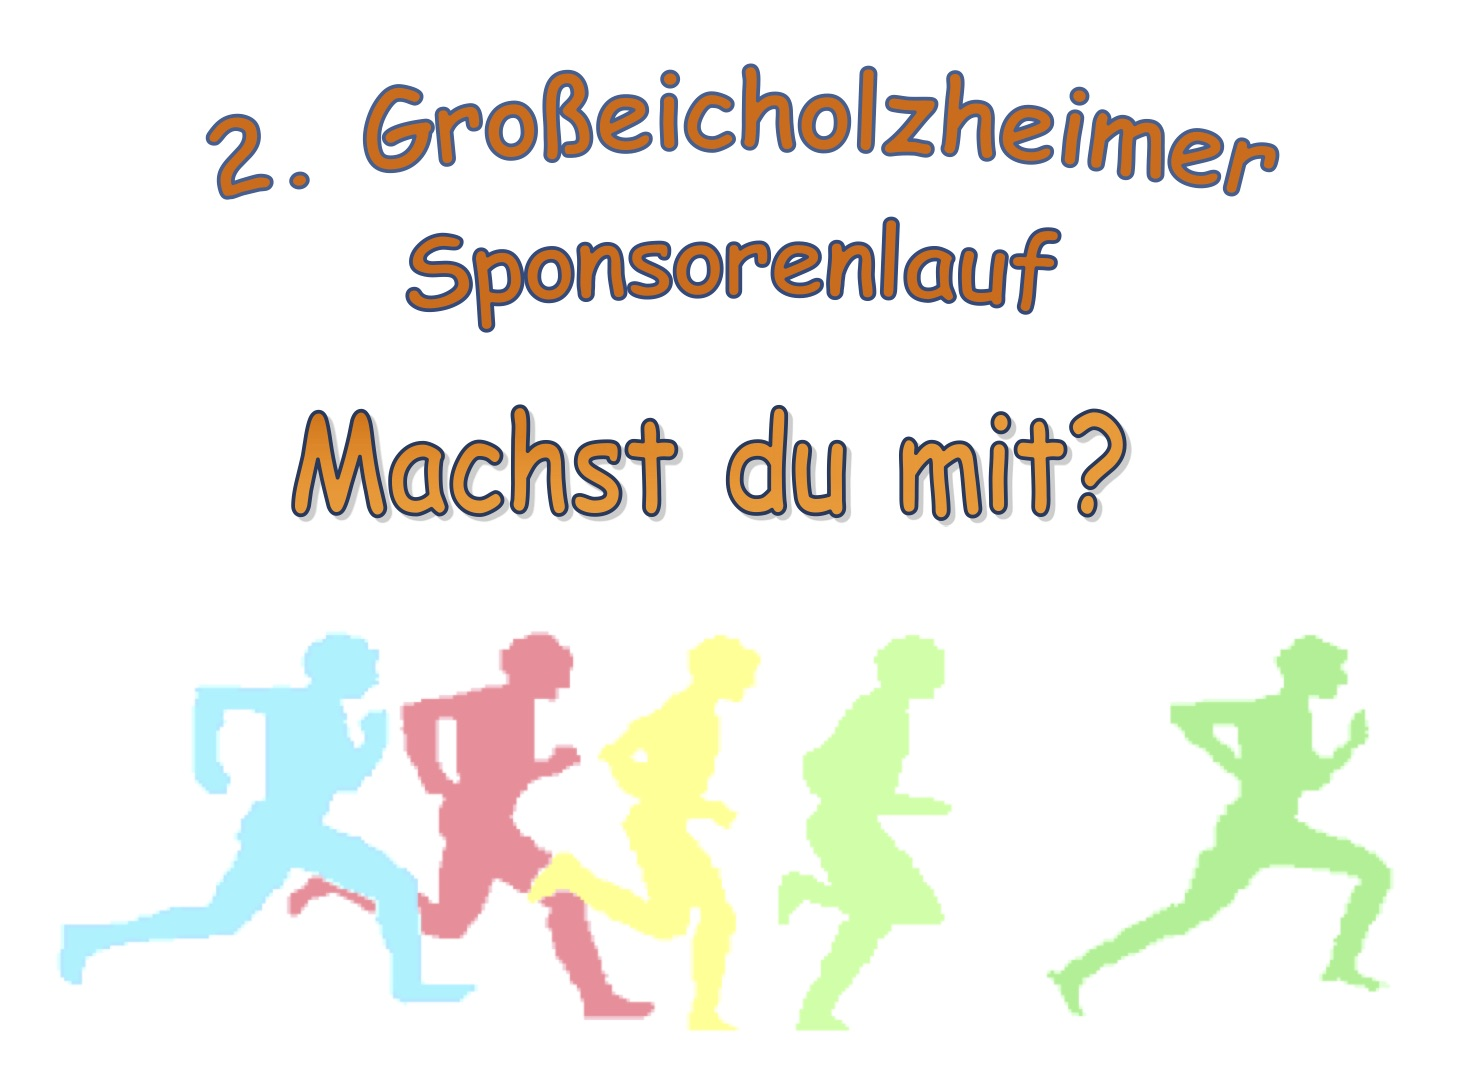 Sponsorenlauf am 21. September